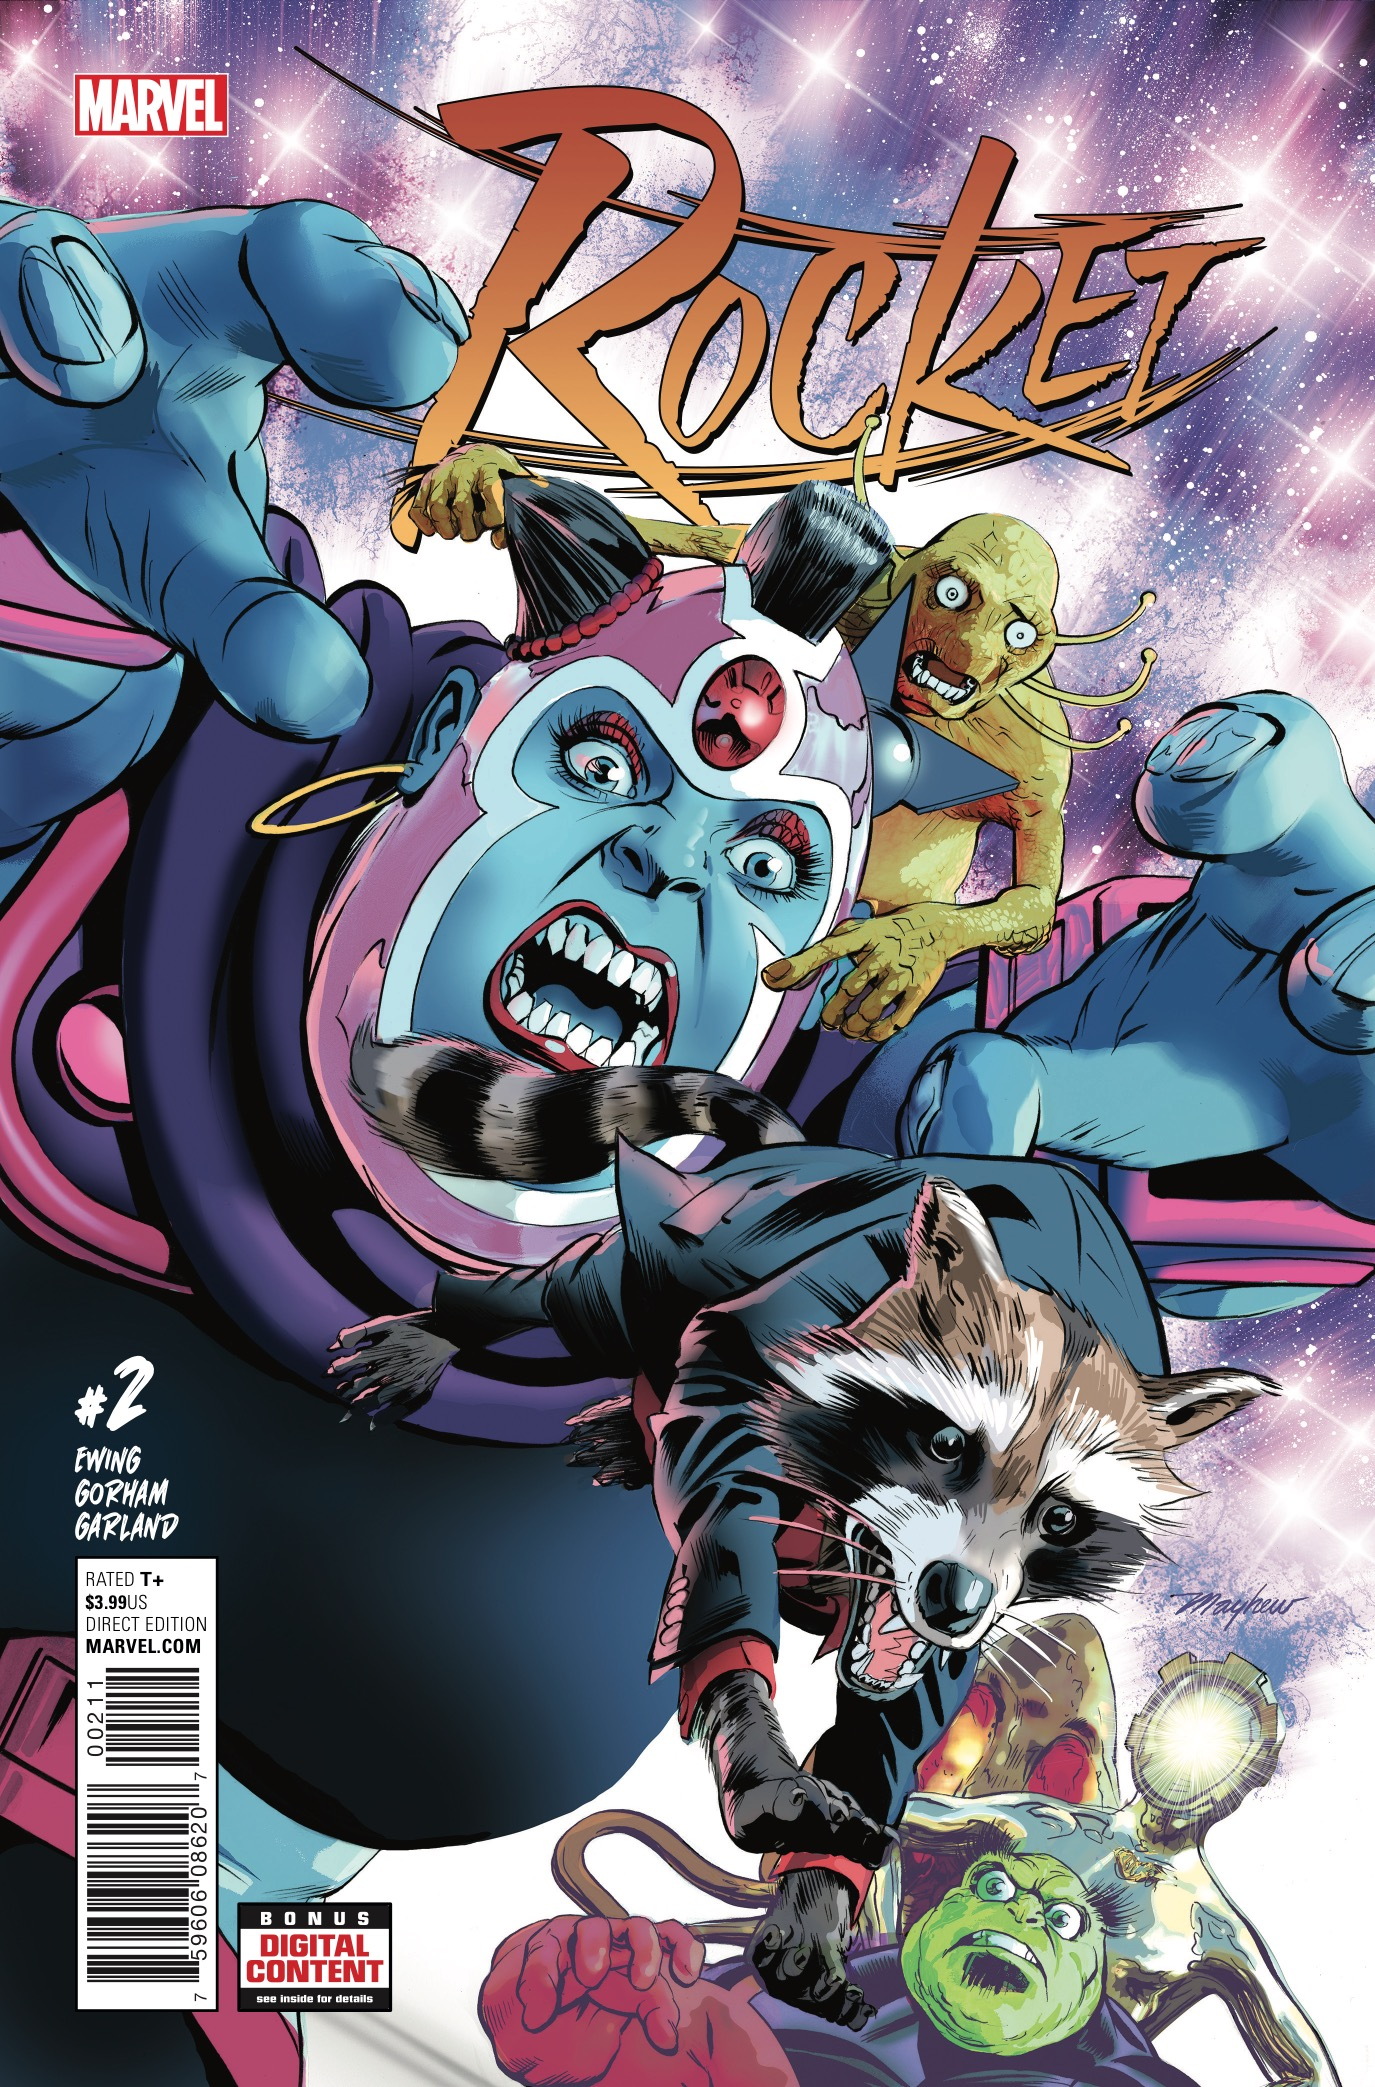 I may not have loved the last issue of this series, but you should always give a comic book at least the second issue to really win you over. Boy, was I surprised to be won over! Rocket Raccoon is in the middle of a heist that's gone very wrong and the threat he faces alien team called Technet, which may be one of the wackiest and most 80s thing to come out of Marvel Comics in a while.